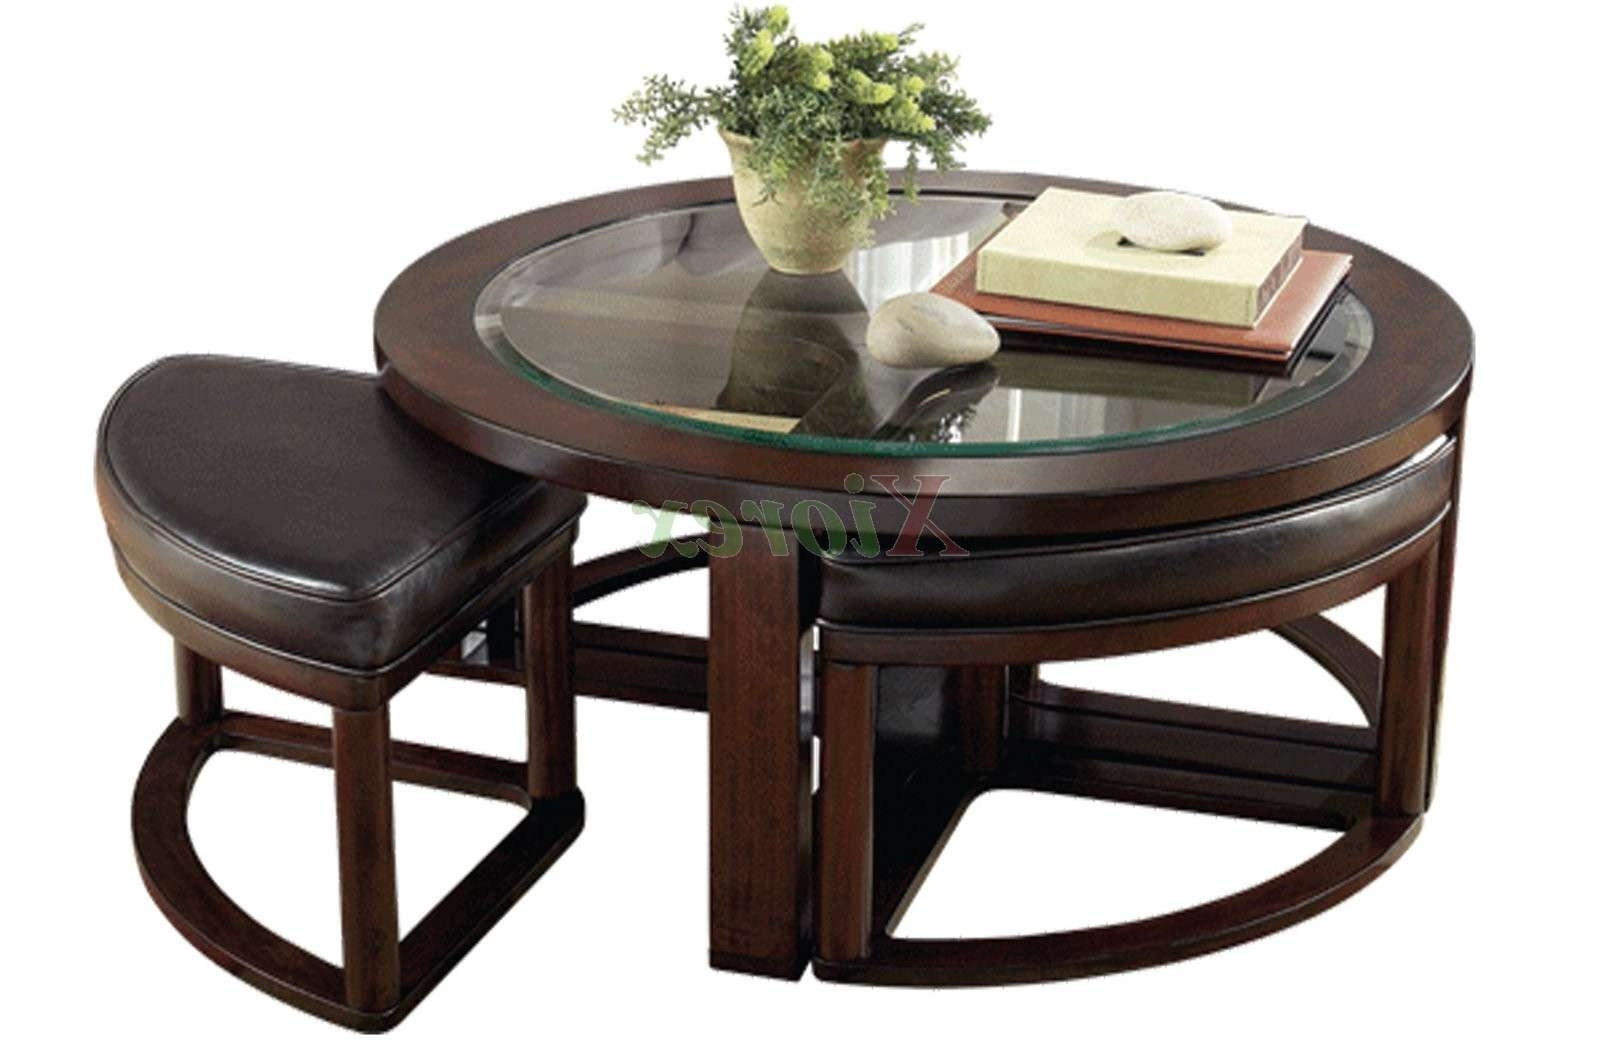 Coffee Table With Seating Underneath 20 Best Collection Of Coffee Table With Chairs